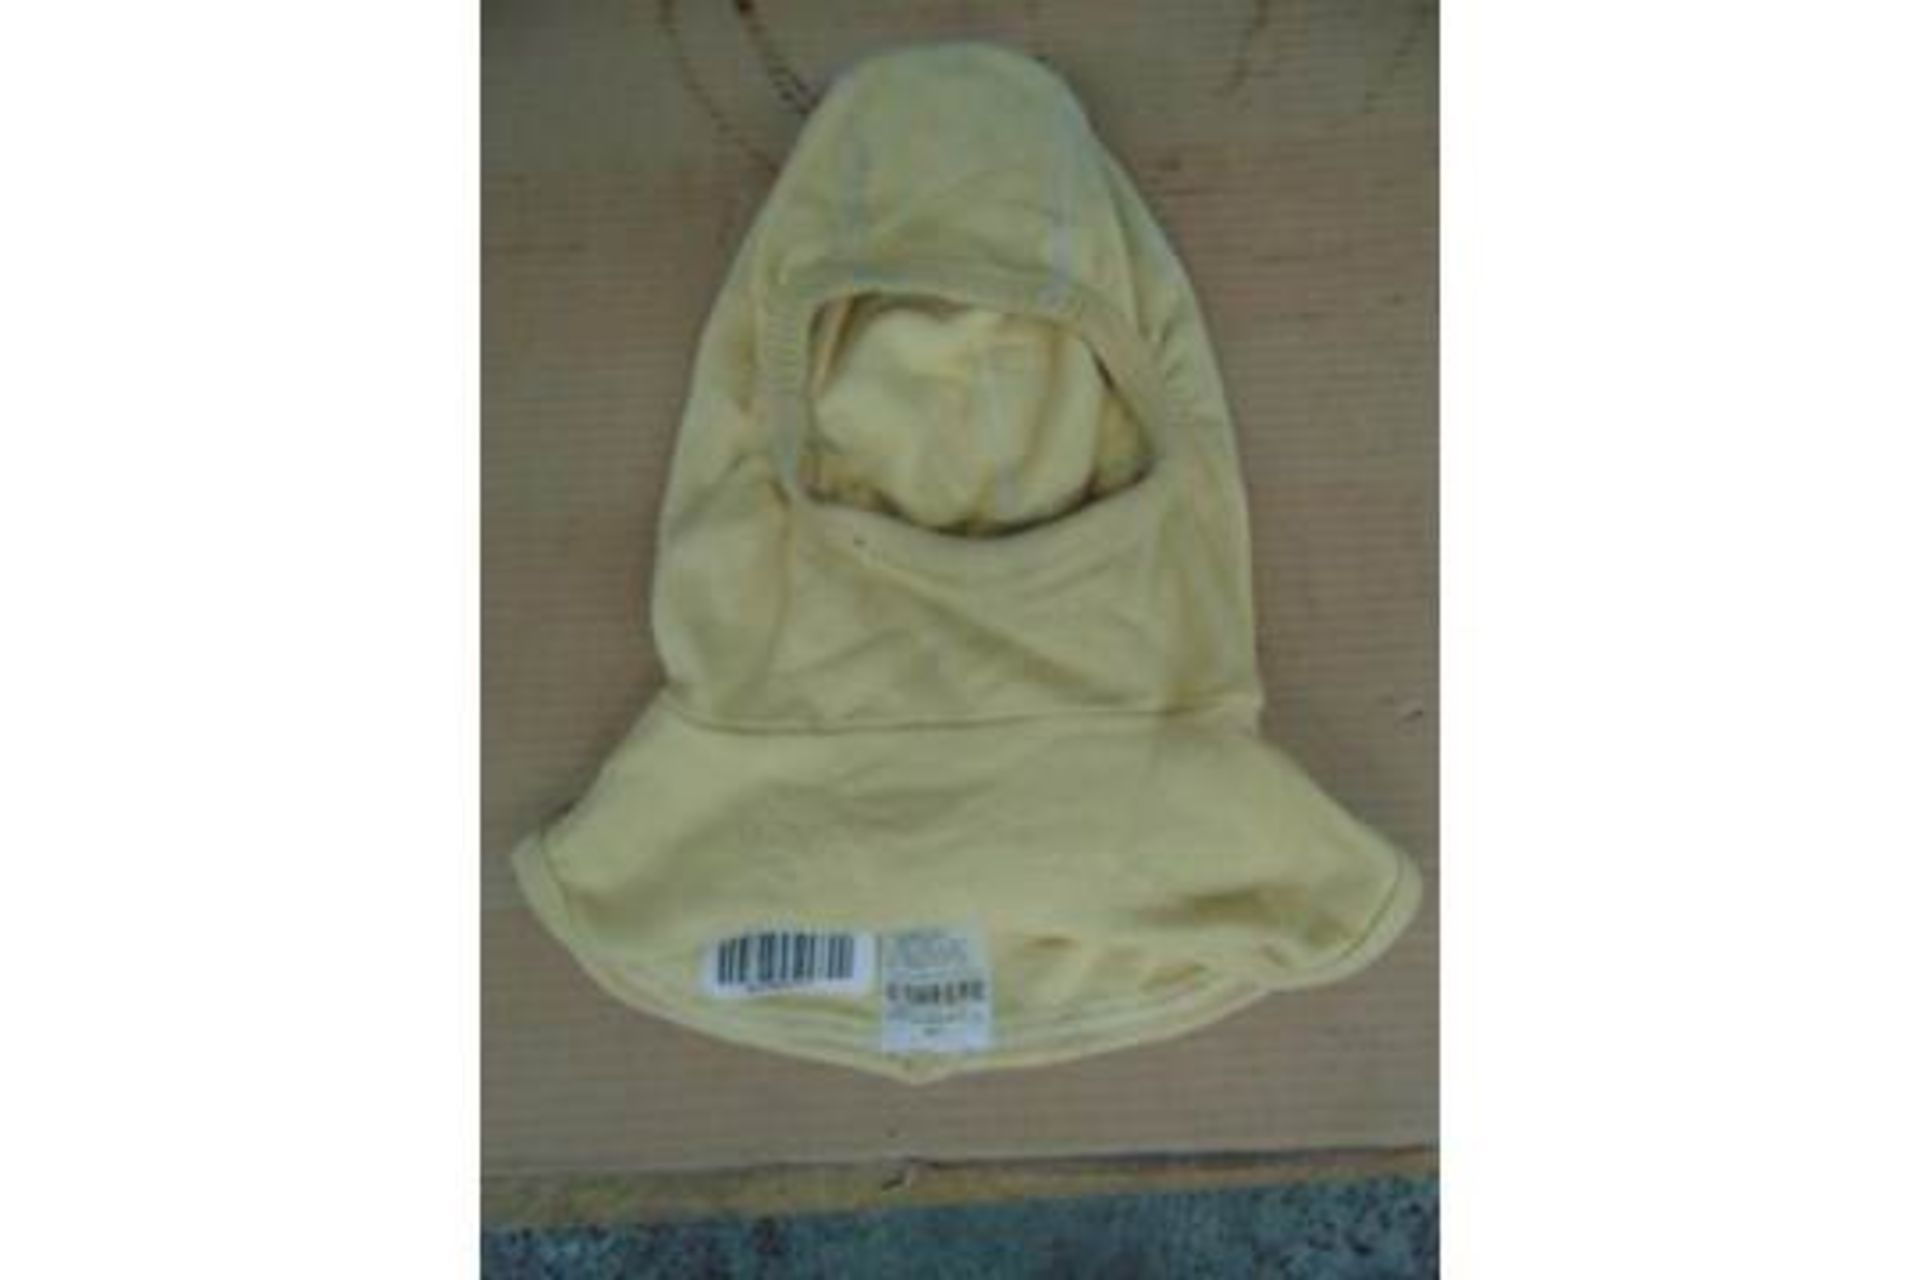 Lot 26798 - 50 x Anti-Flash Hoods